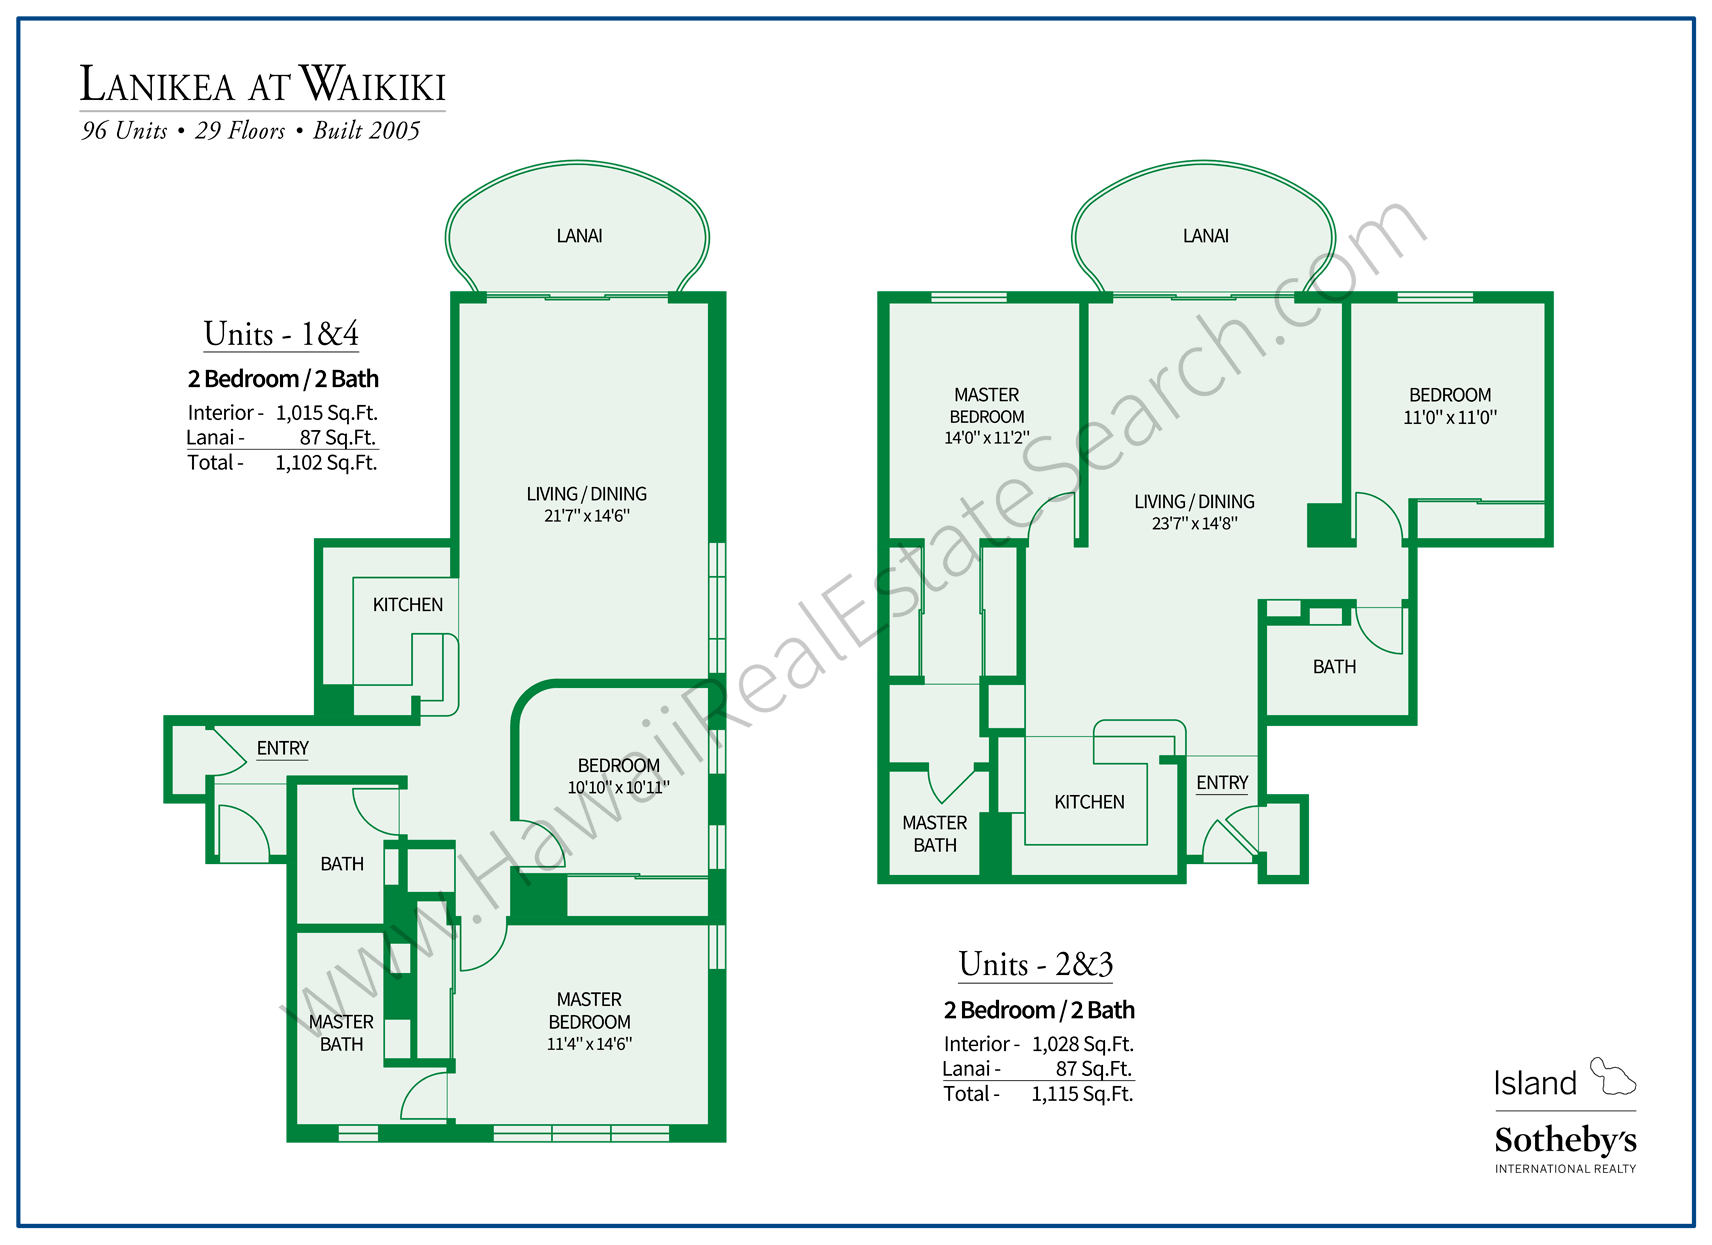 Lanikea at Waikiki Floor Plans